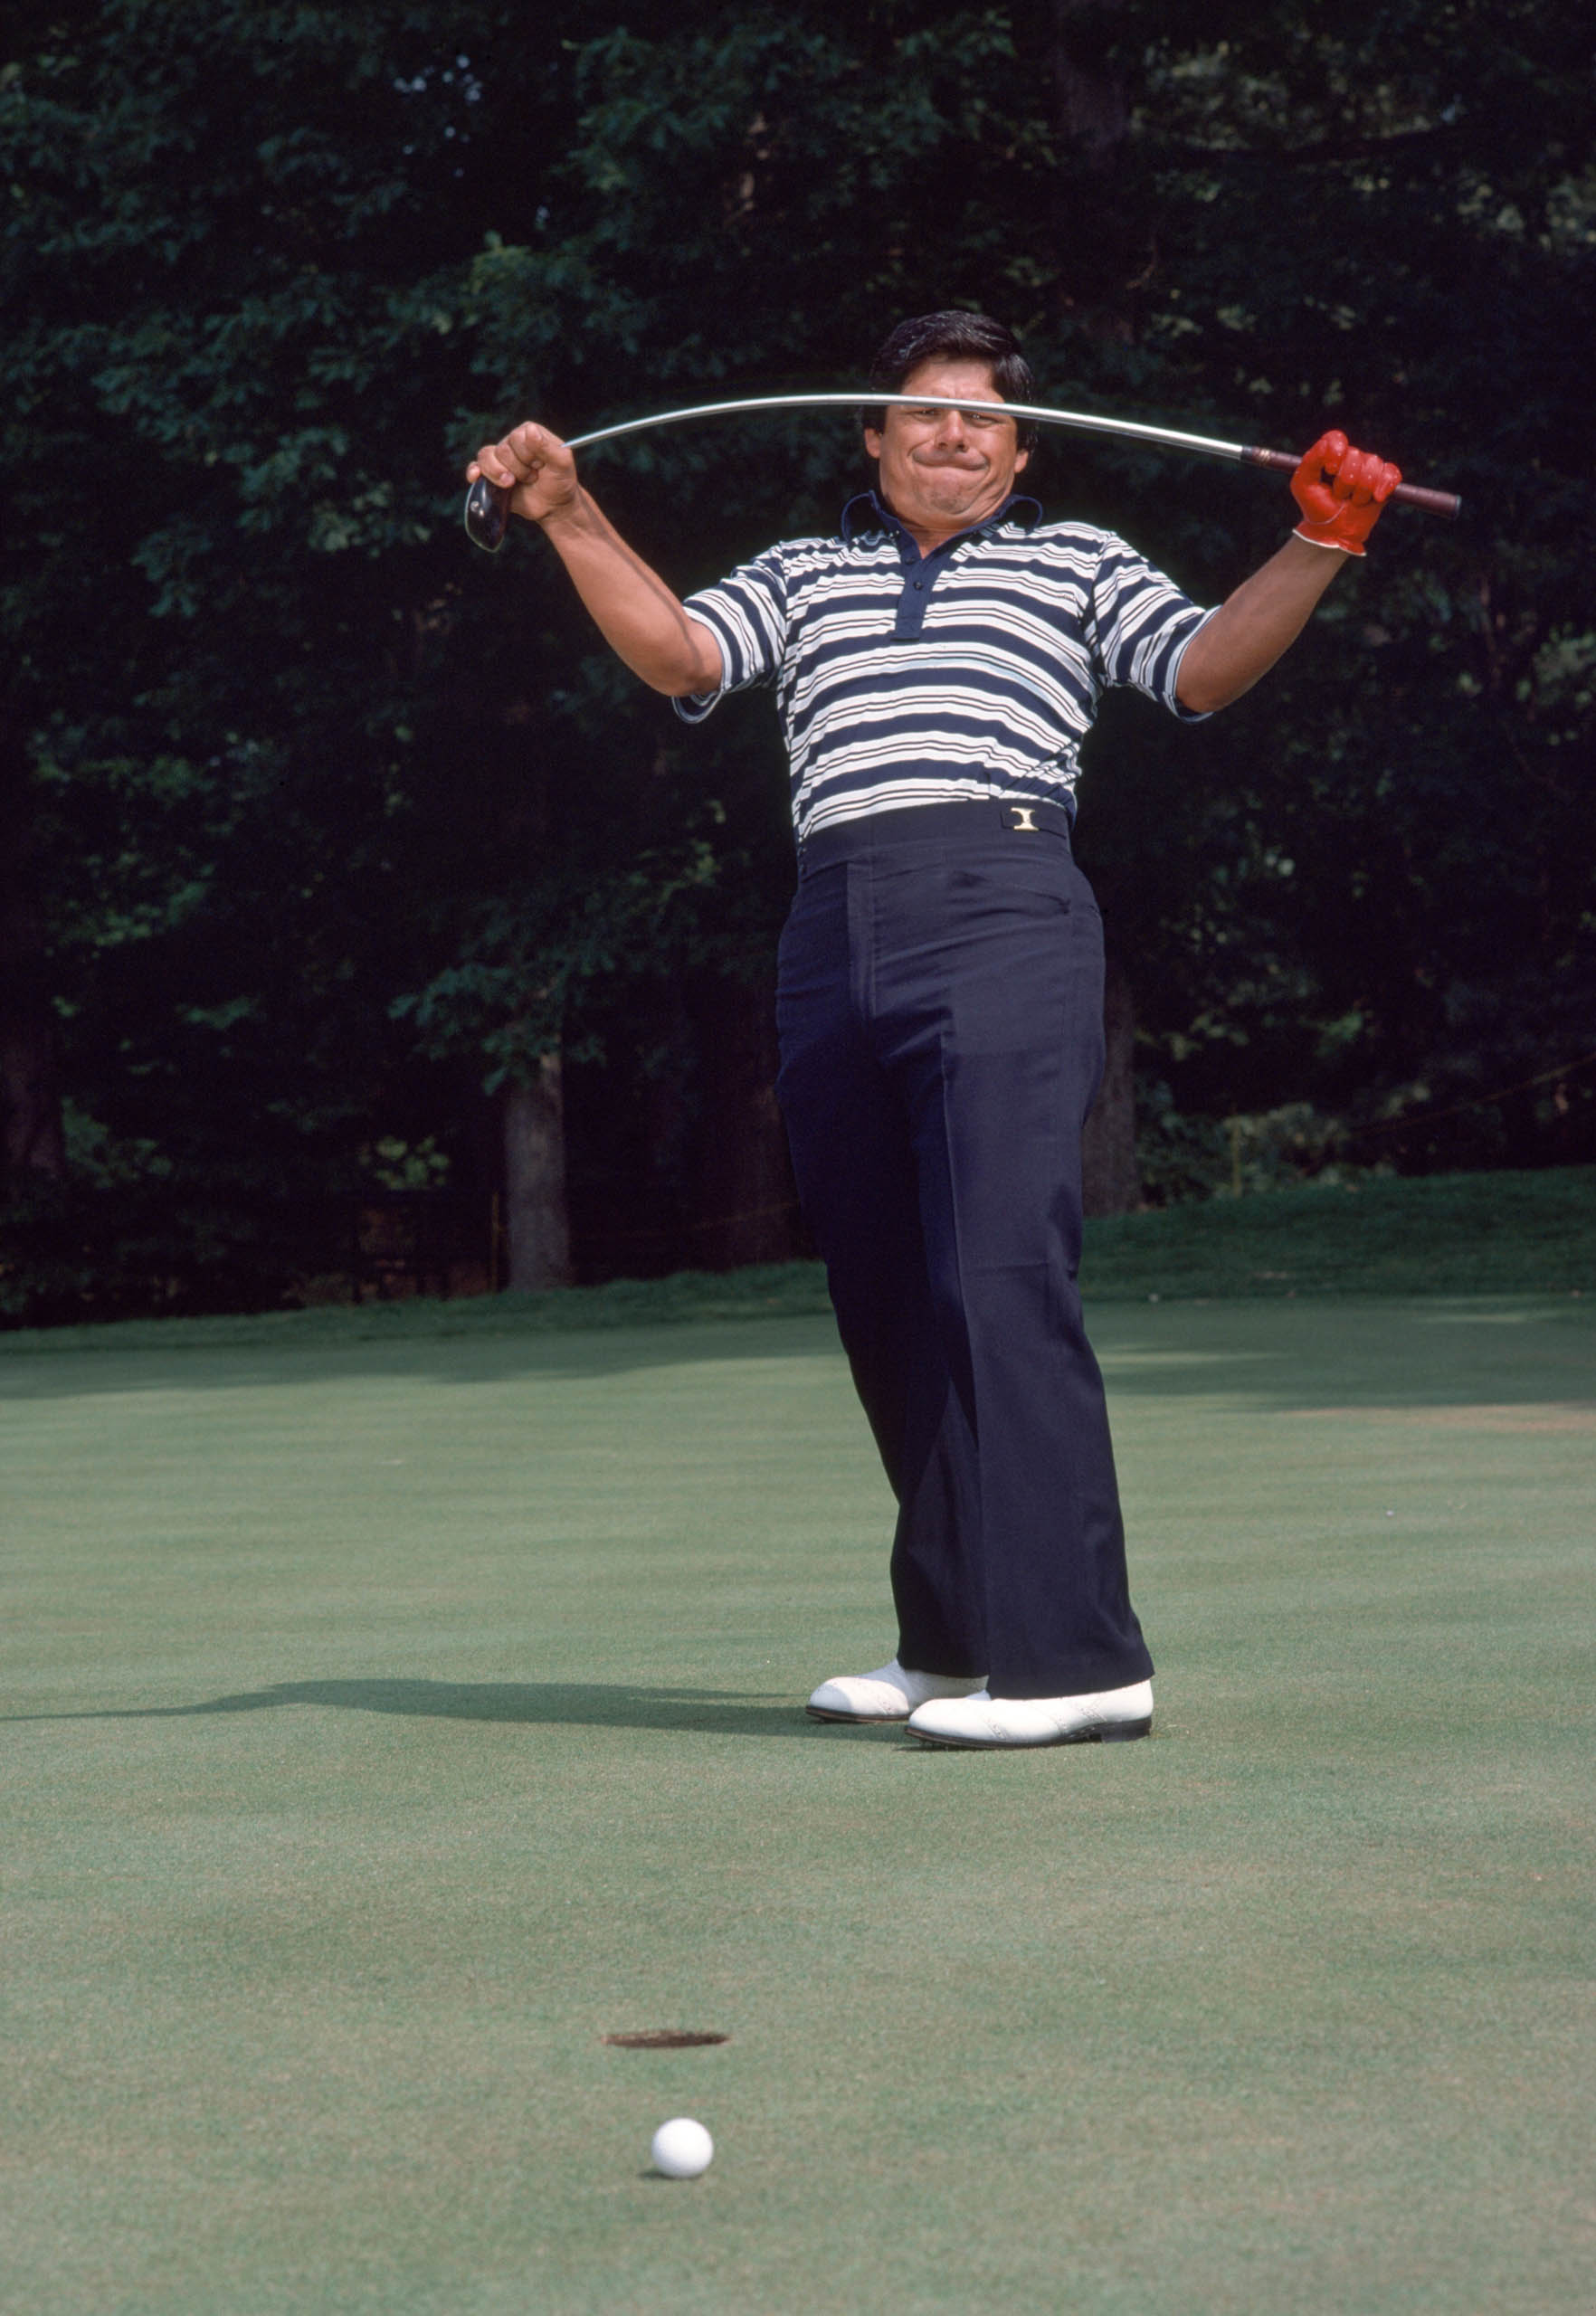 American golfer Lee Trevino shows his displeasure after missing his putt with a wood, circa 1980. (Photo by Leonard Kamsler/Popperfoto via Getty Images)